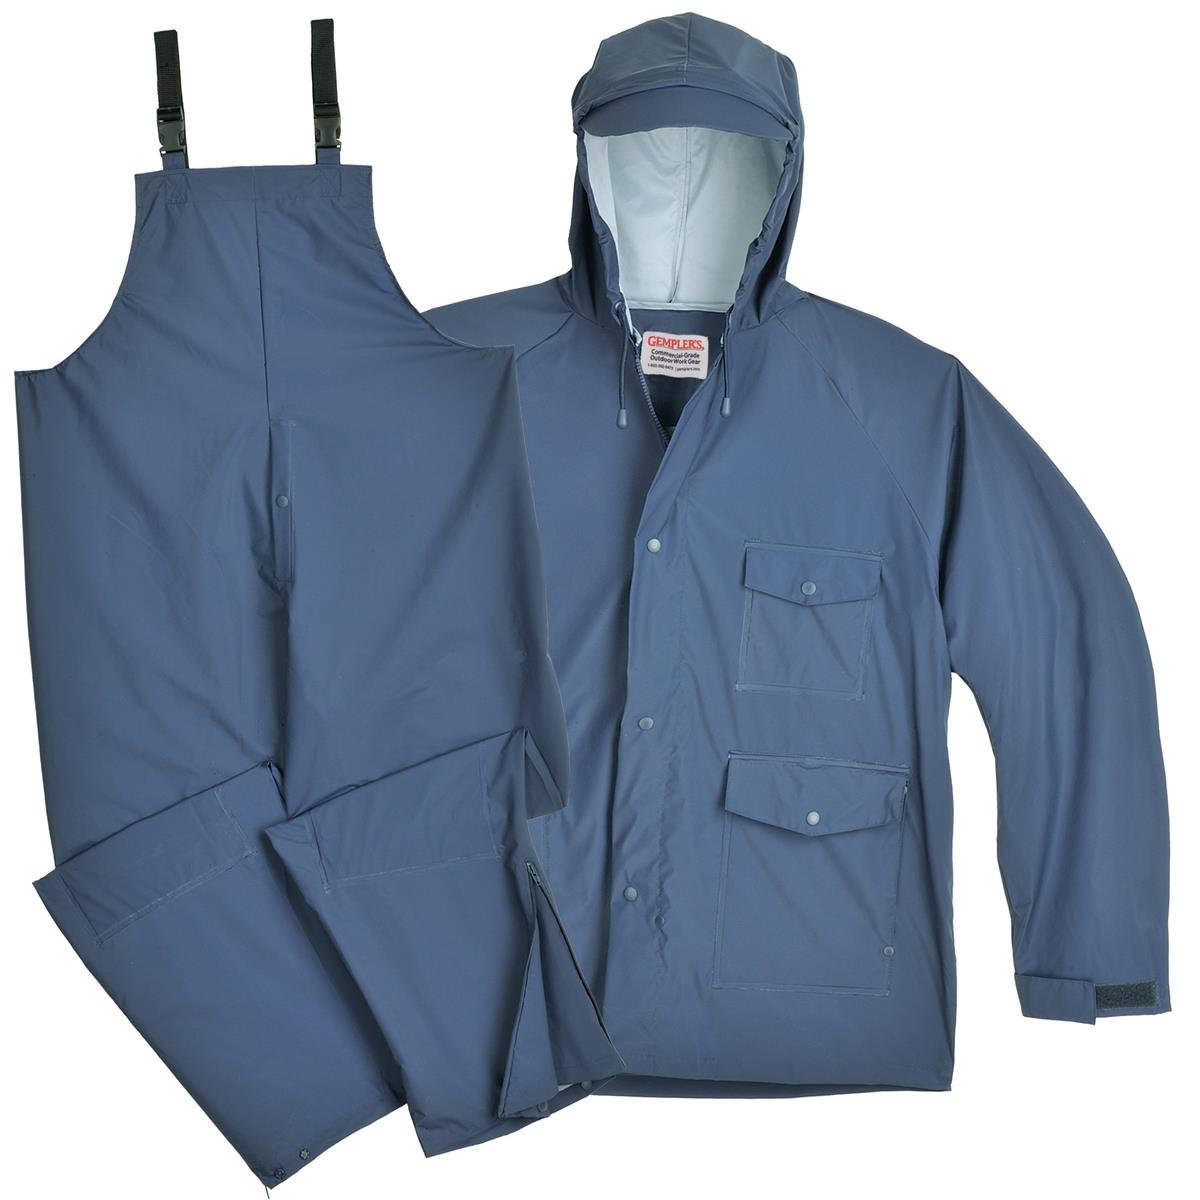 Gempler's Premium Quality Rain Jacket and Bib Overalls Waterproof Rain Suit, Blue, Size XL